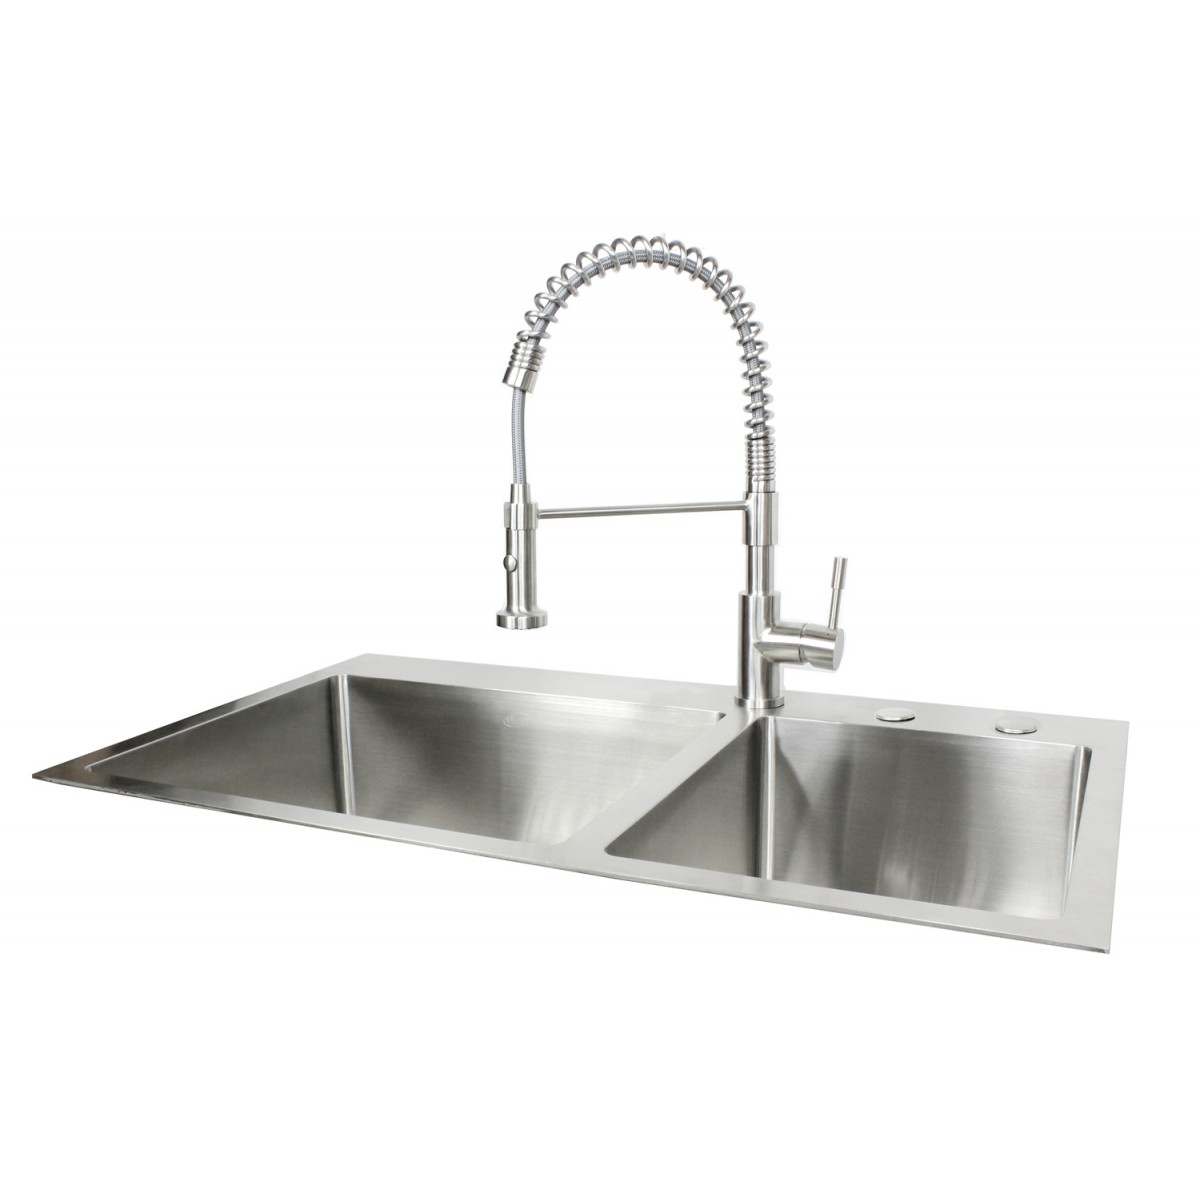 36 Inch Top-Mount / Drop-In Stainless Steel 60/40 Double Bowl ...  Drop In Kitchen Sink on 24 x 16 sink, hammered copper farmhouse sink, 24 bathroom vanity with sink, cast iron undermount double sink, 70 30 undermount stainless steel sink, copper bowl sink,